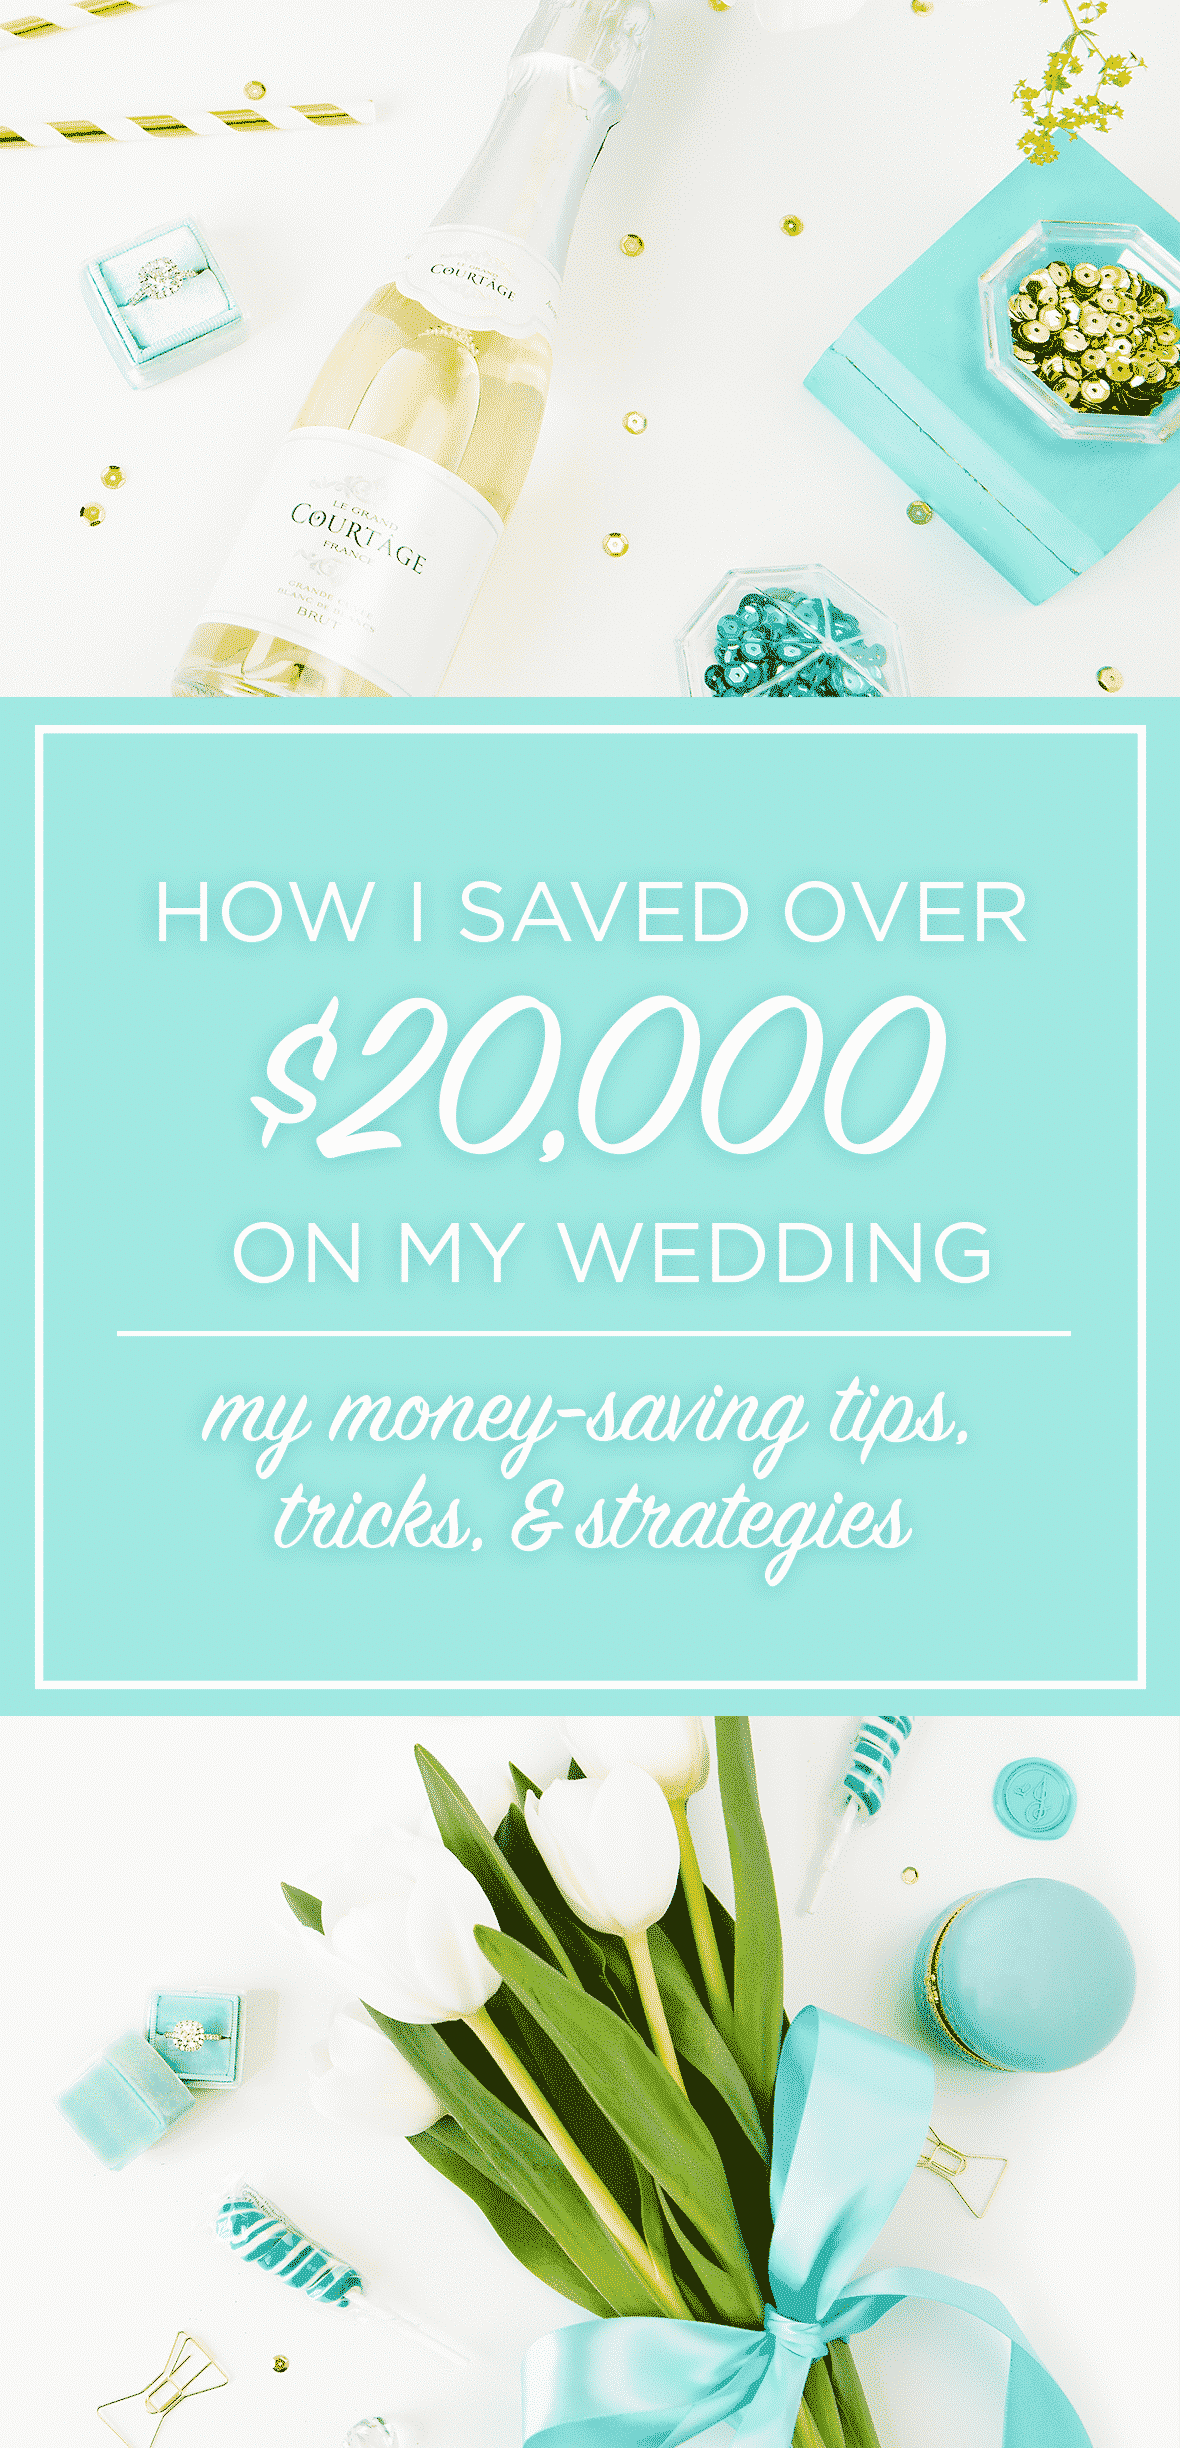 Find out how I saved over half off the cost of my wedding. I'm sharing my top money-saving tips, tricks, and strategies to save you money on your big day!